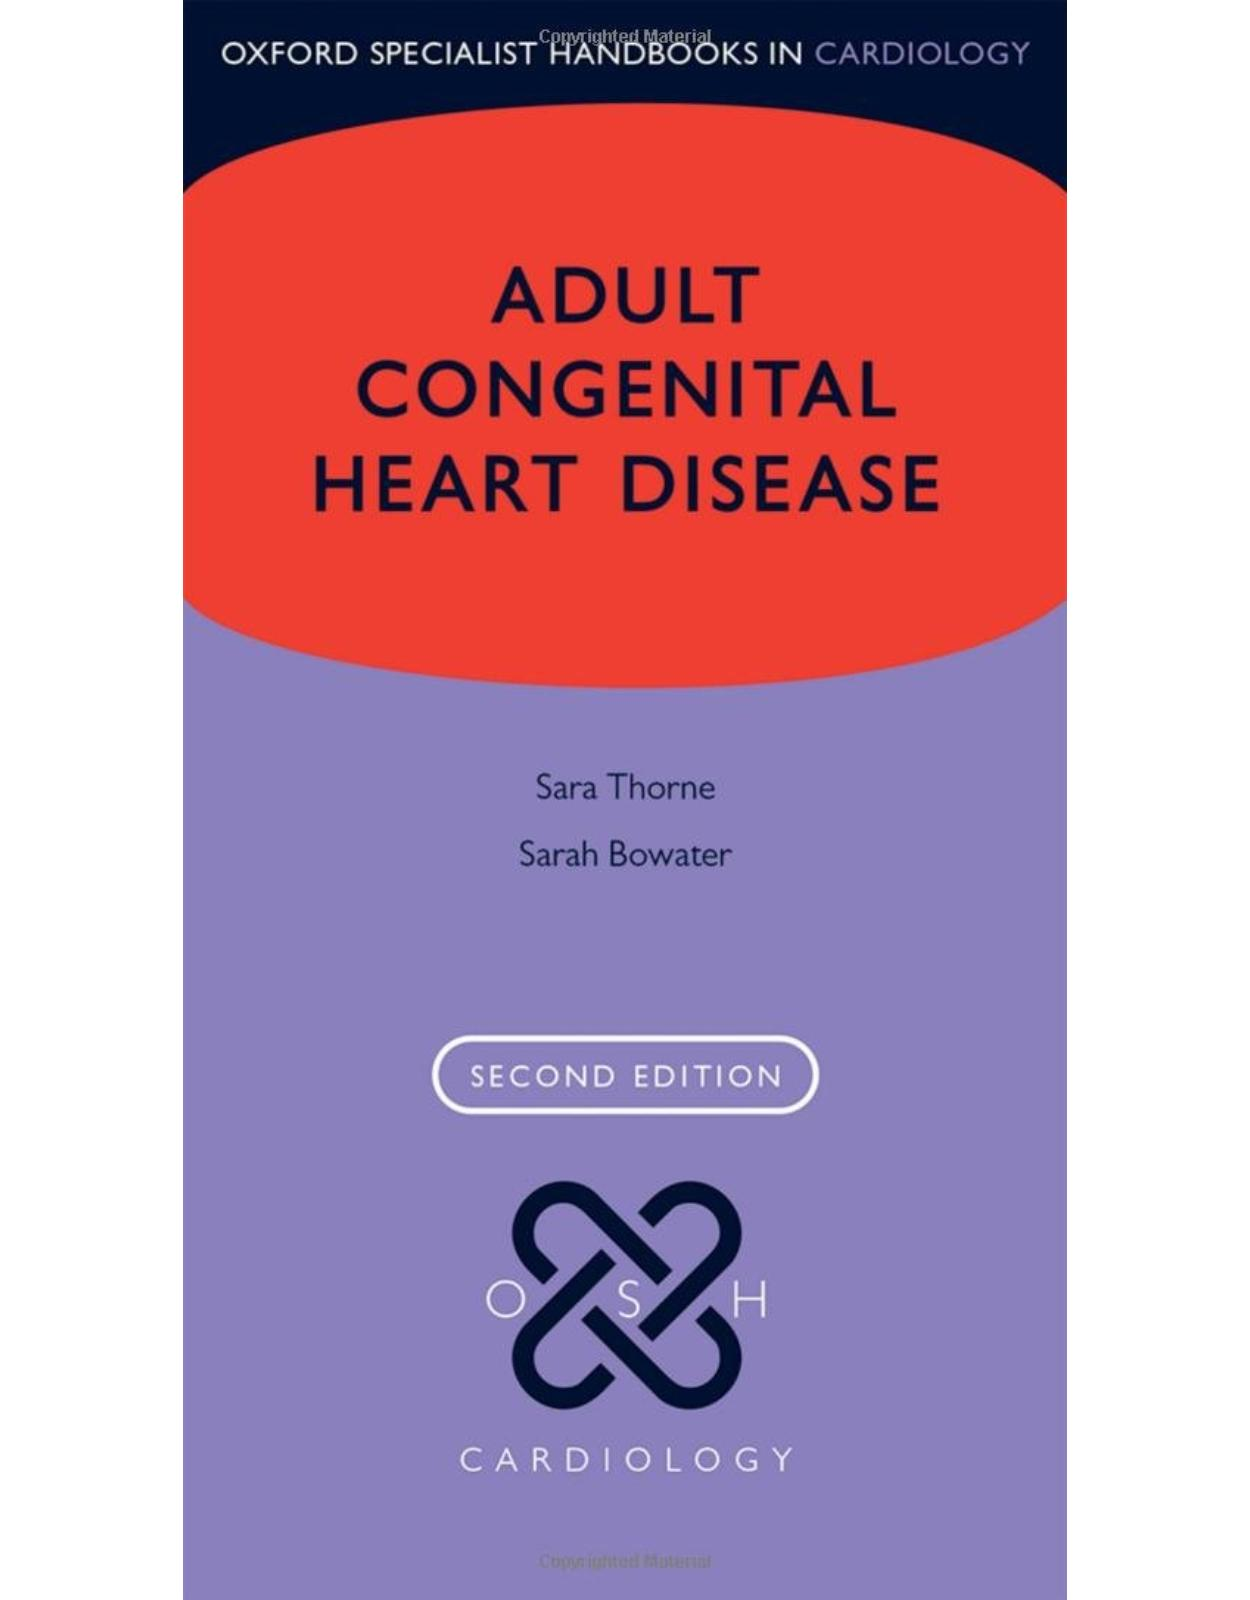 Adult Congenital Heart Disease (Oxford Specialist Handbooks in Cardiology)